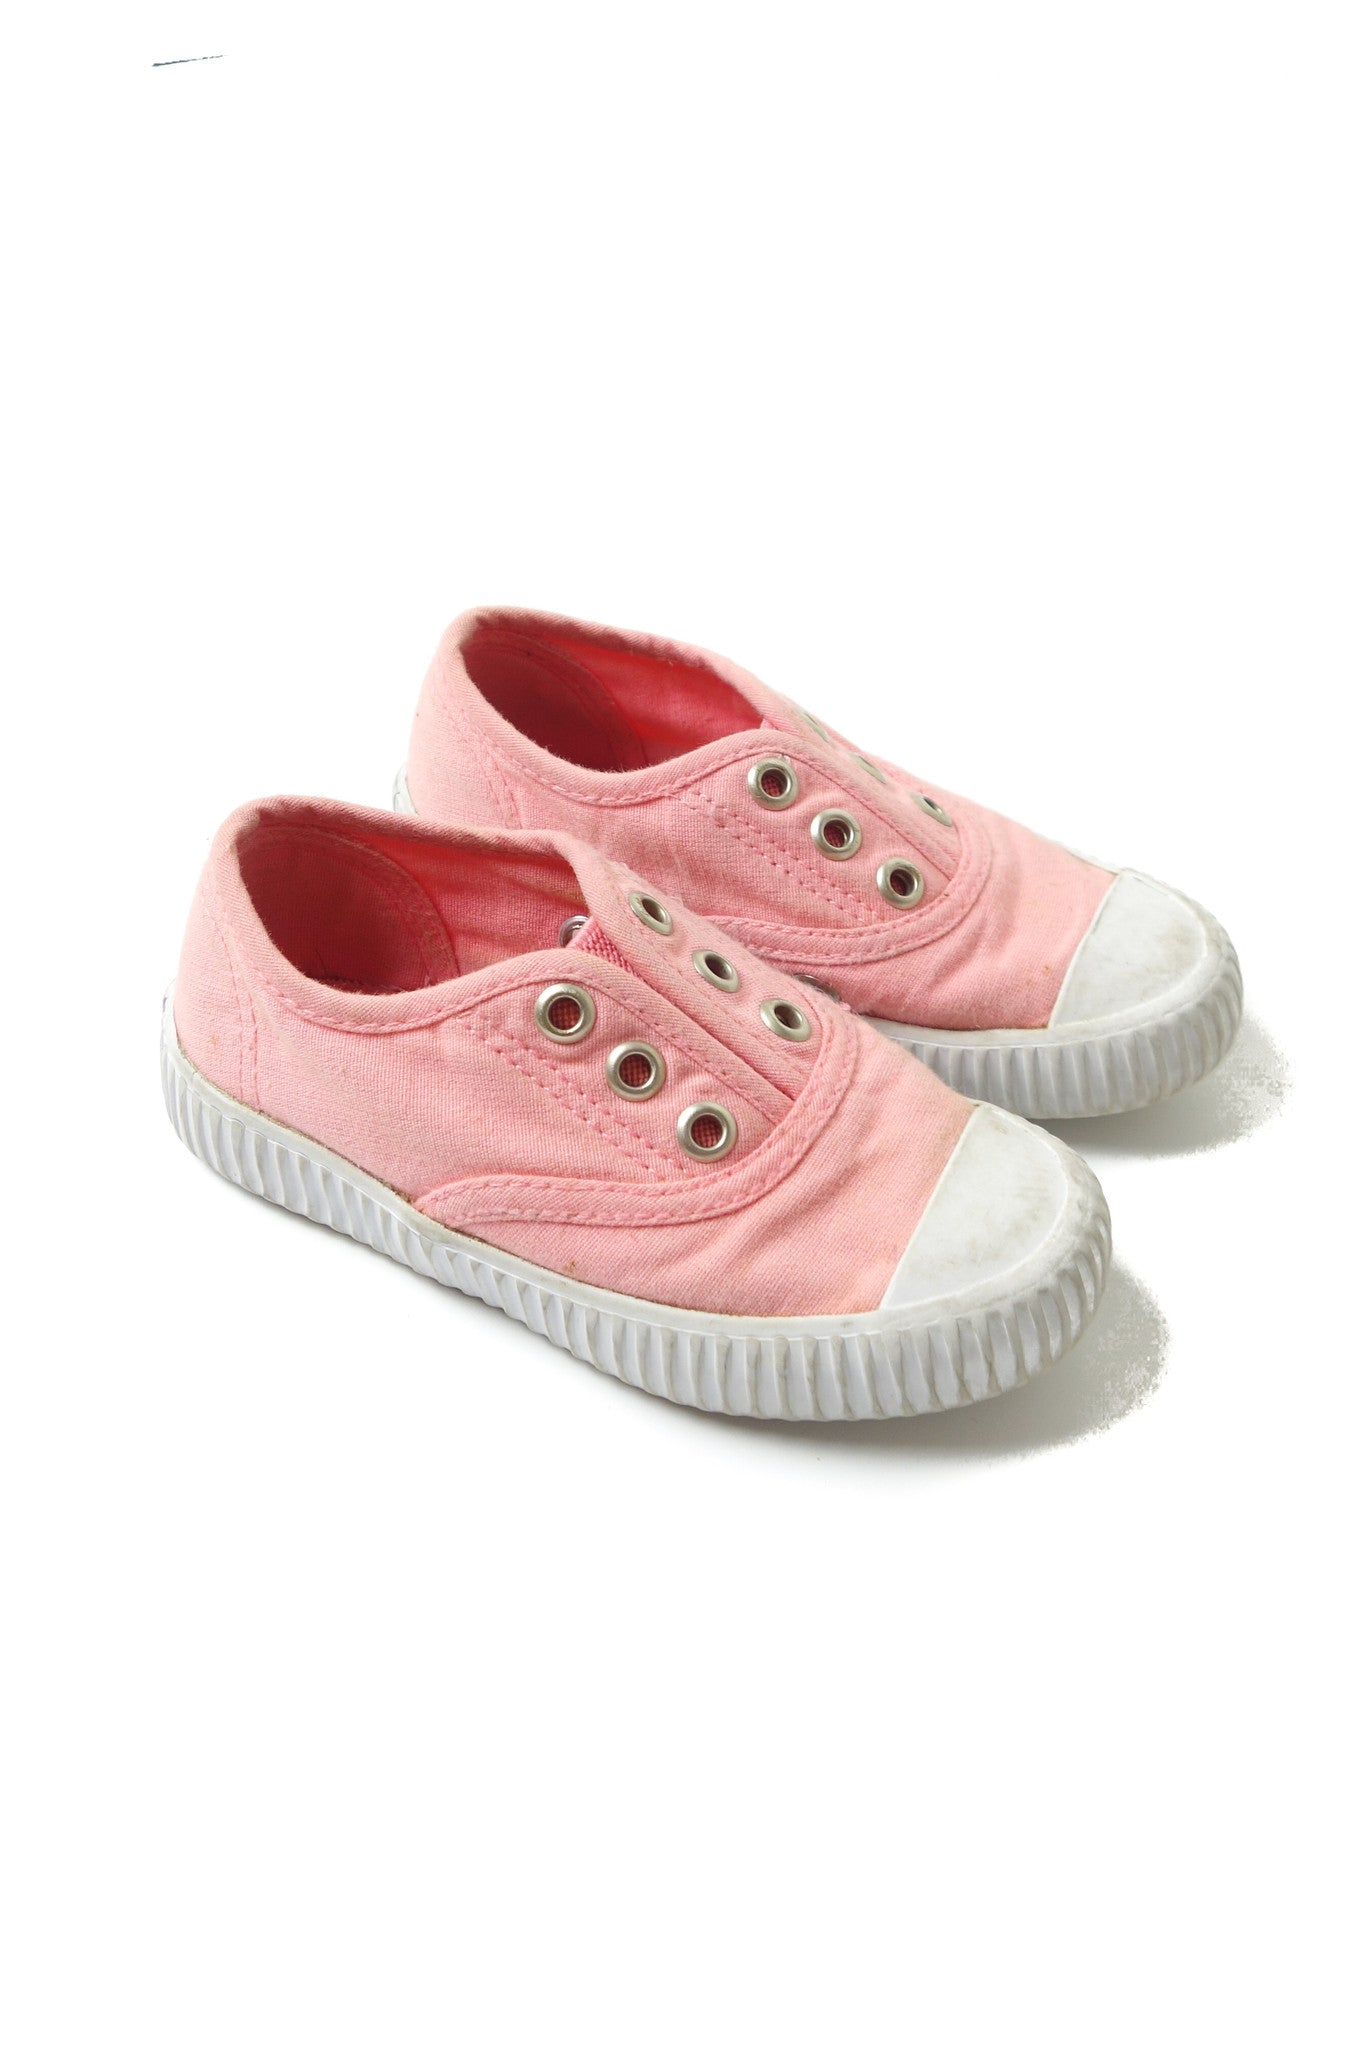 10001637 Seed Baby~Shoes 18-24M (EU 23) at Retykle